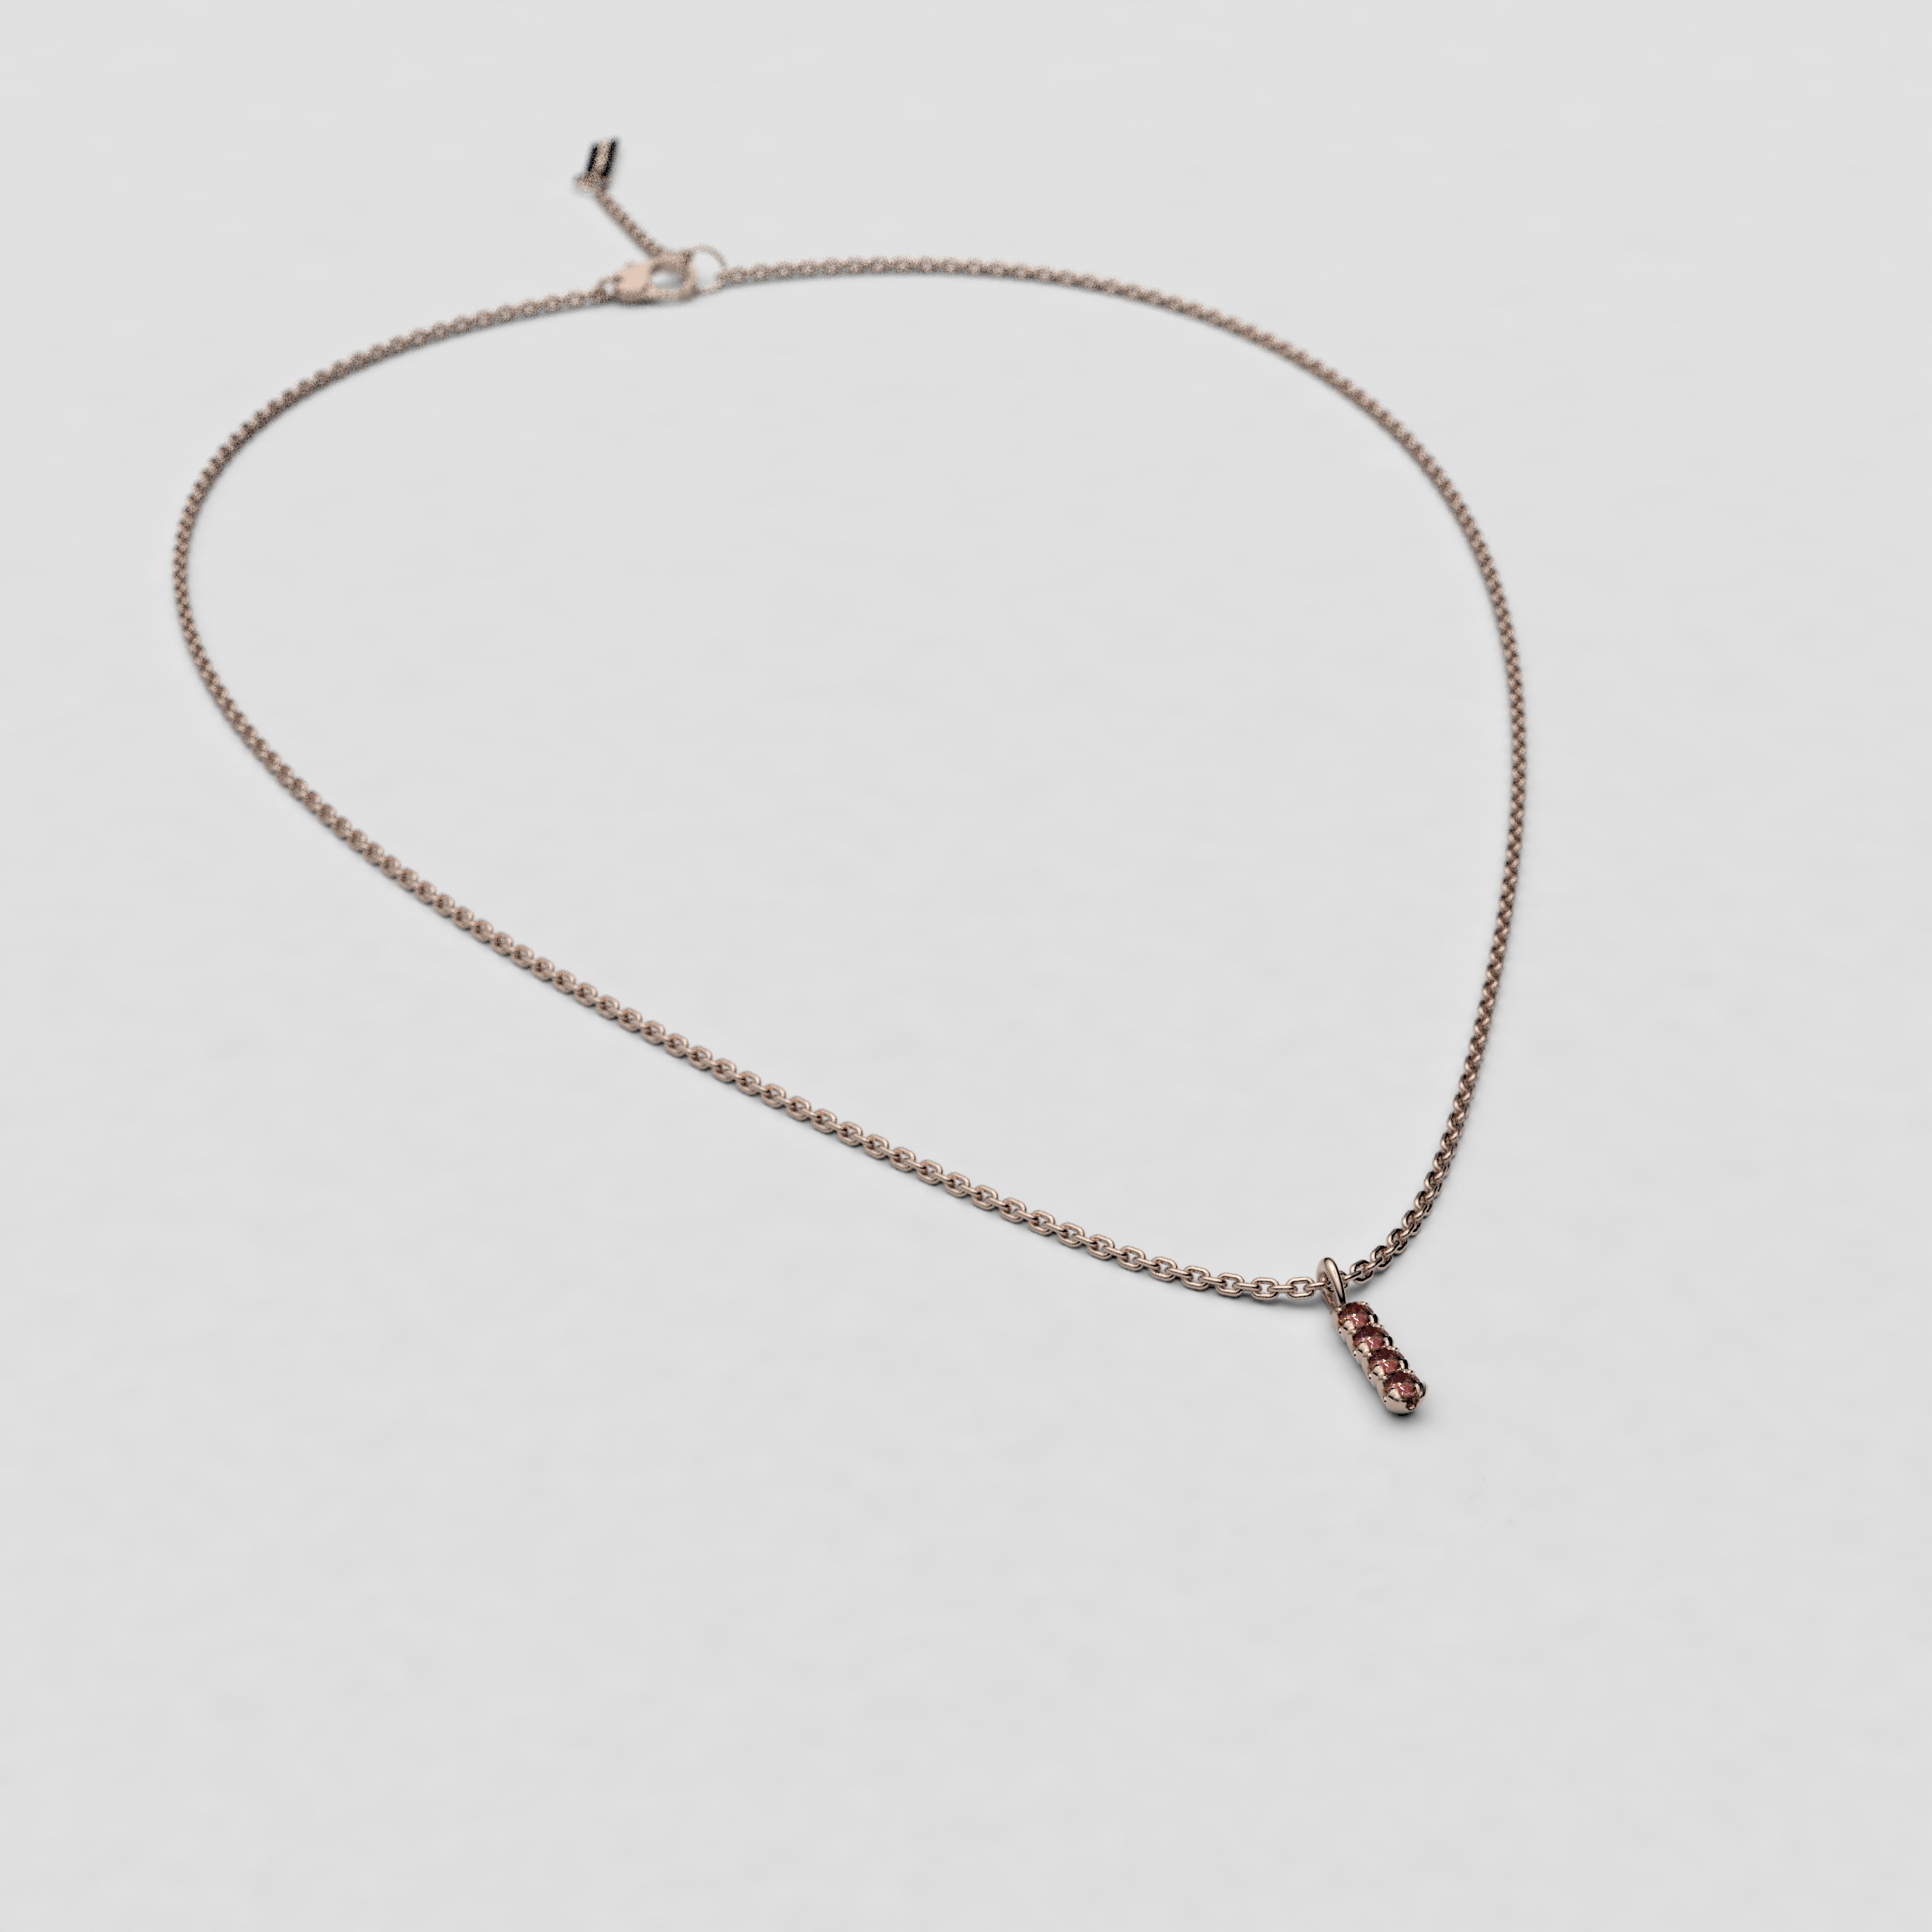 blossom necklace and short pendant  - brown diamond and 18k yellow gold